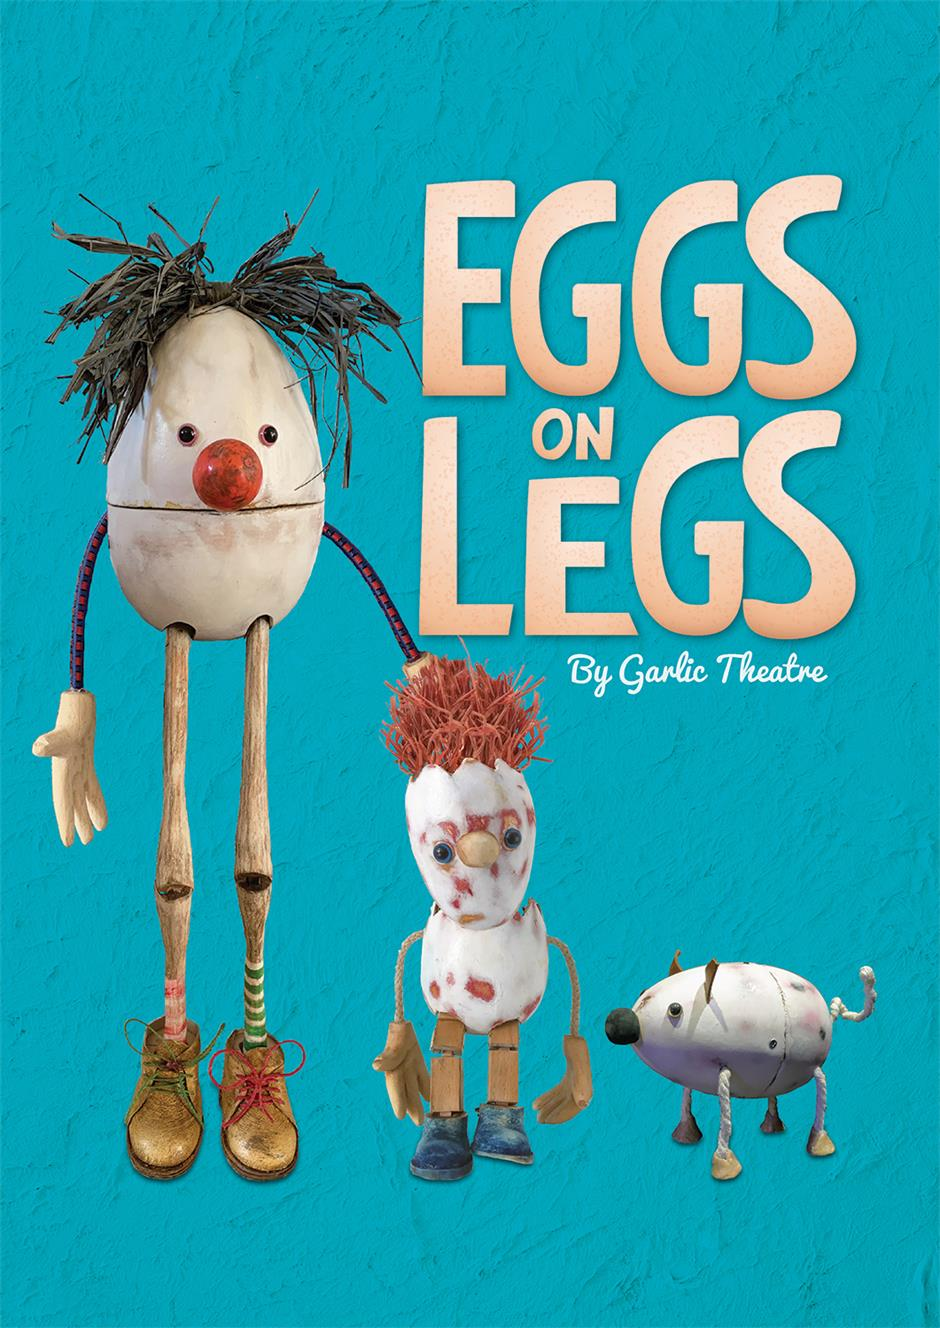 Garlic Theatre: Eggs on Legs